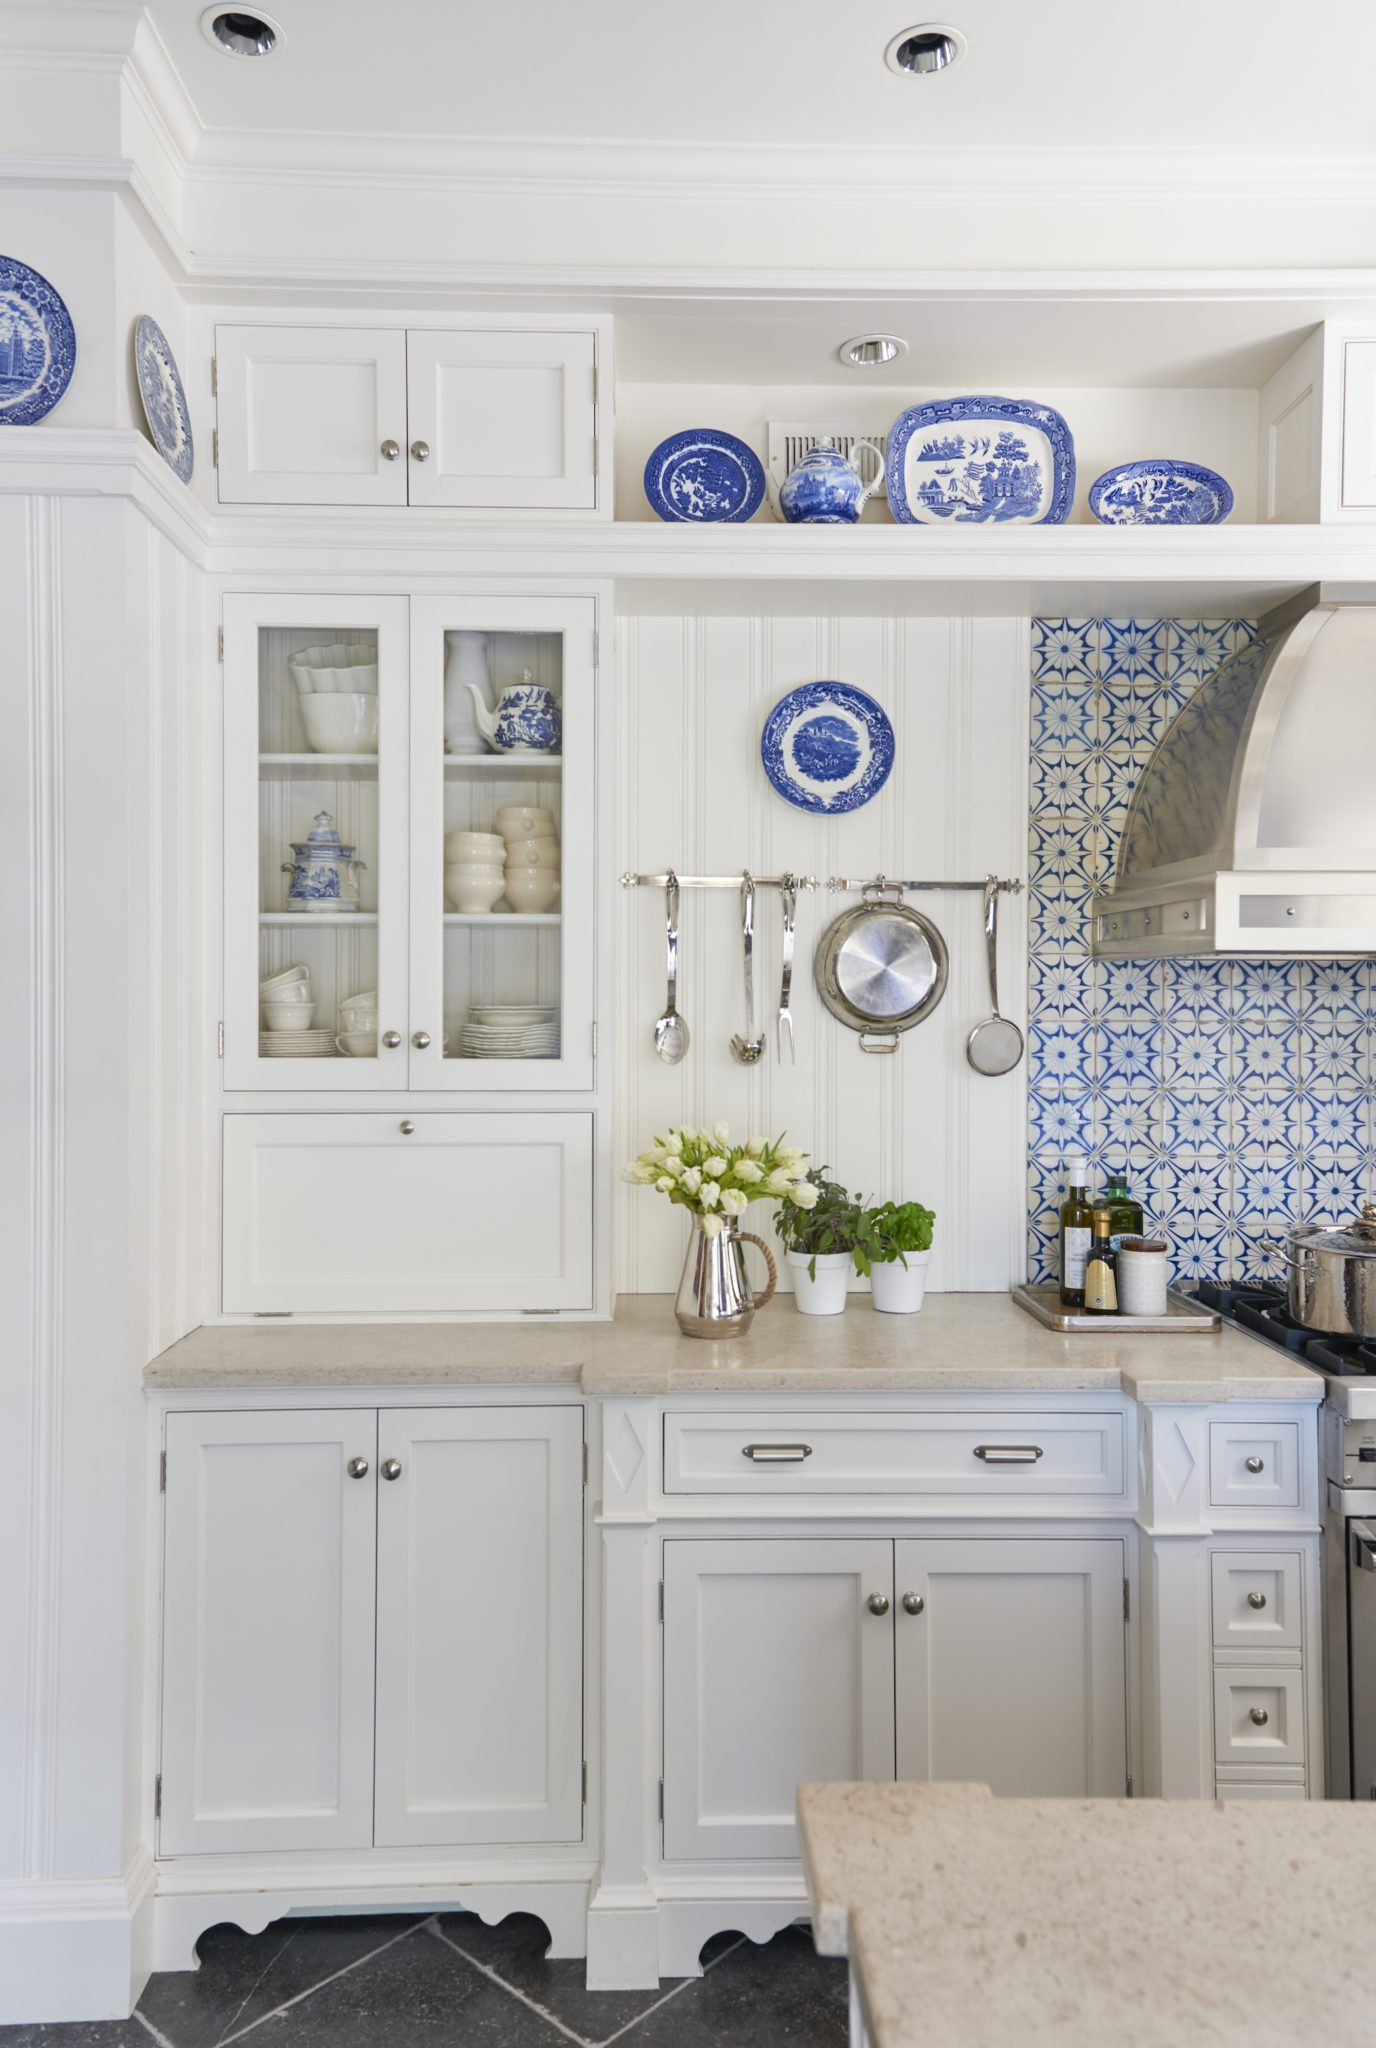 My client's kitchen satisfies her storage needs and cooking capabilities. By Sarah Blank Design Studio